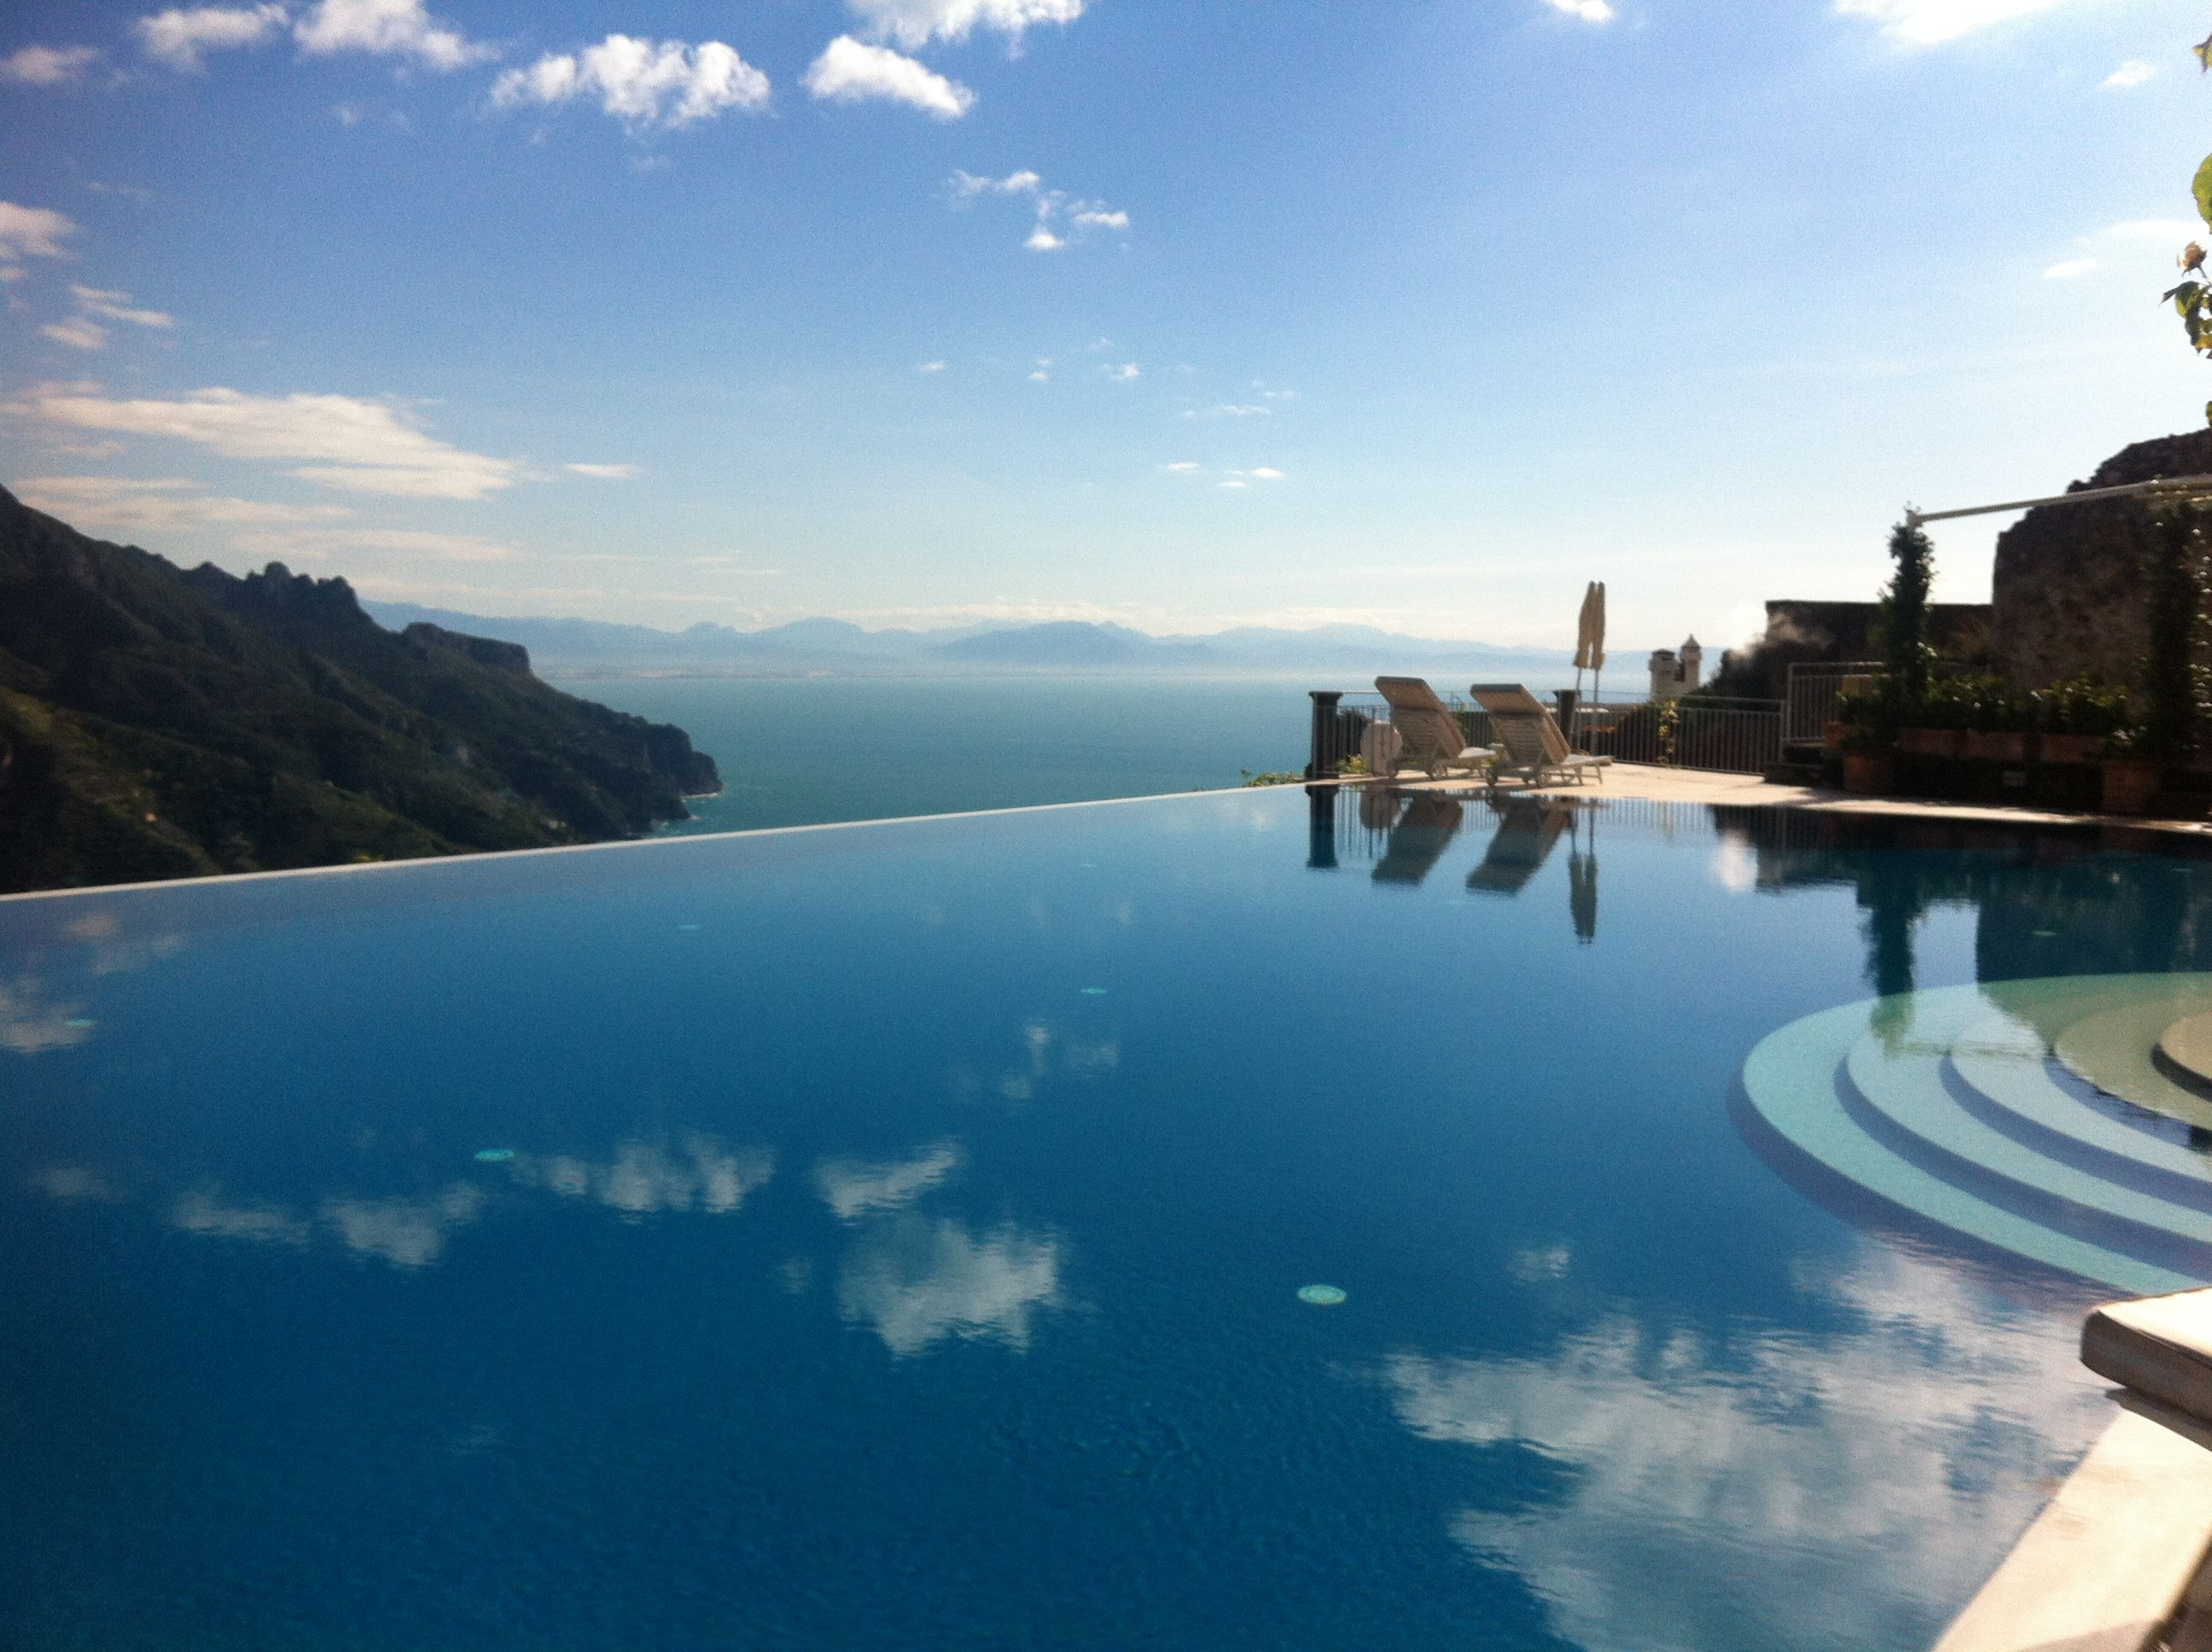 Hotel caruso ravello 360degree views from the fabulous infinity pool fave hotels - Infinity pool europe ...